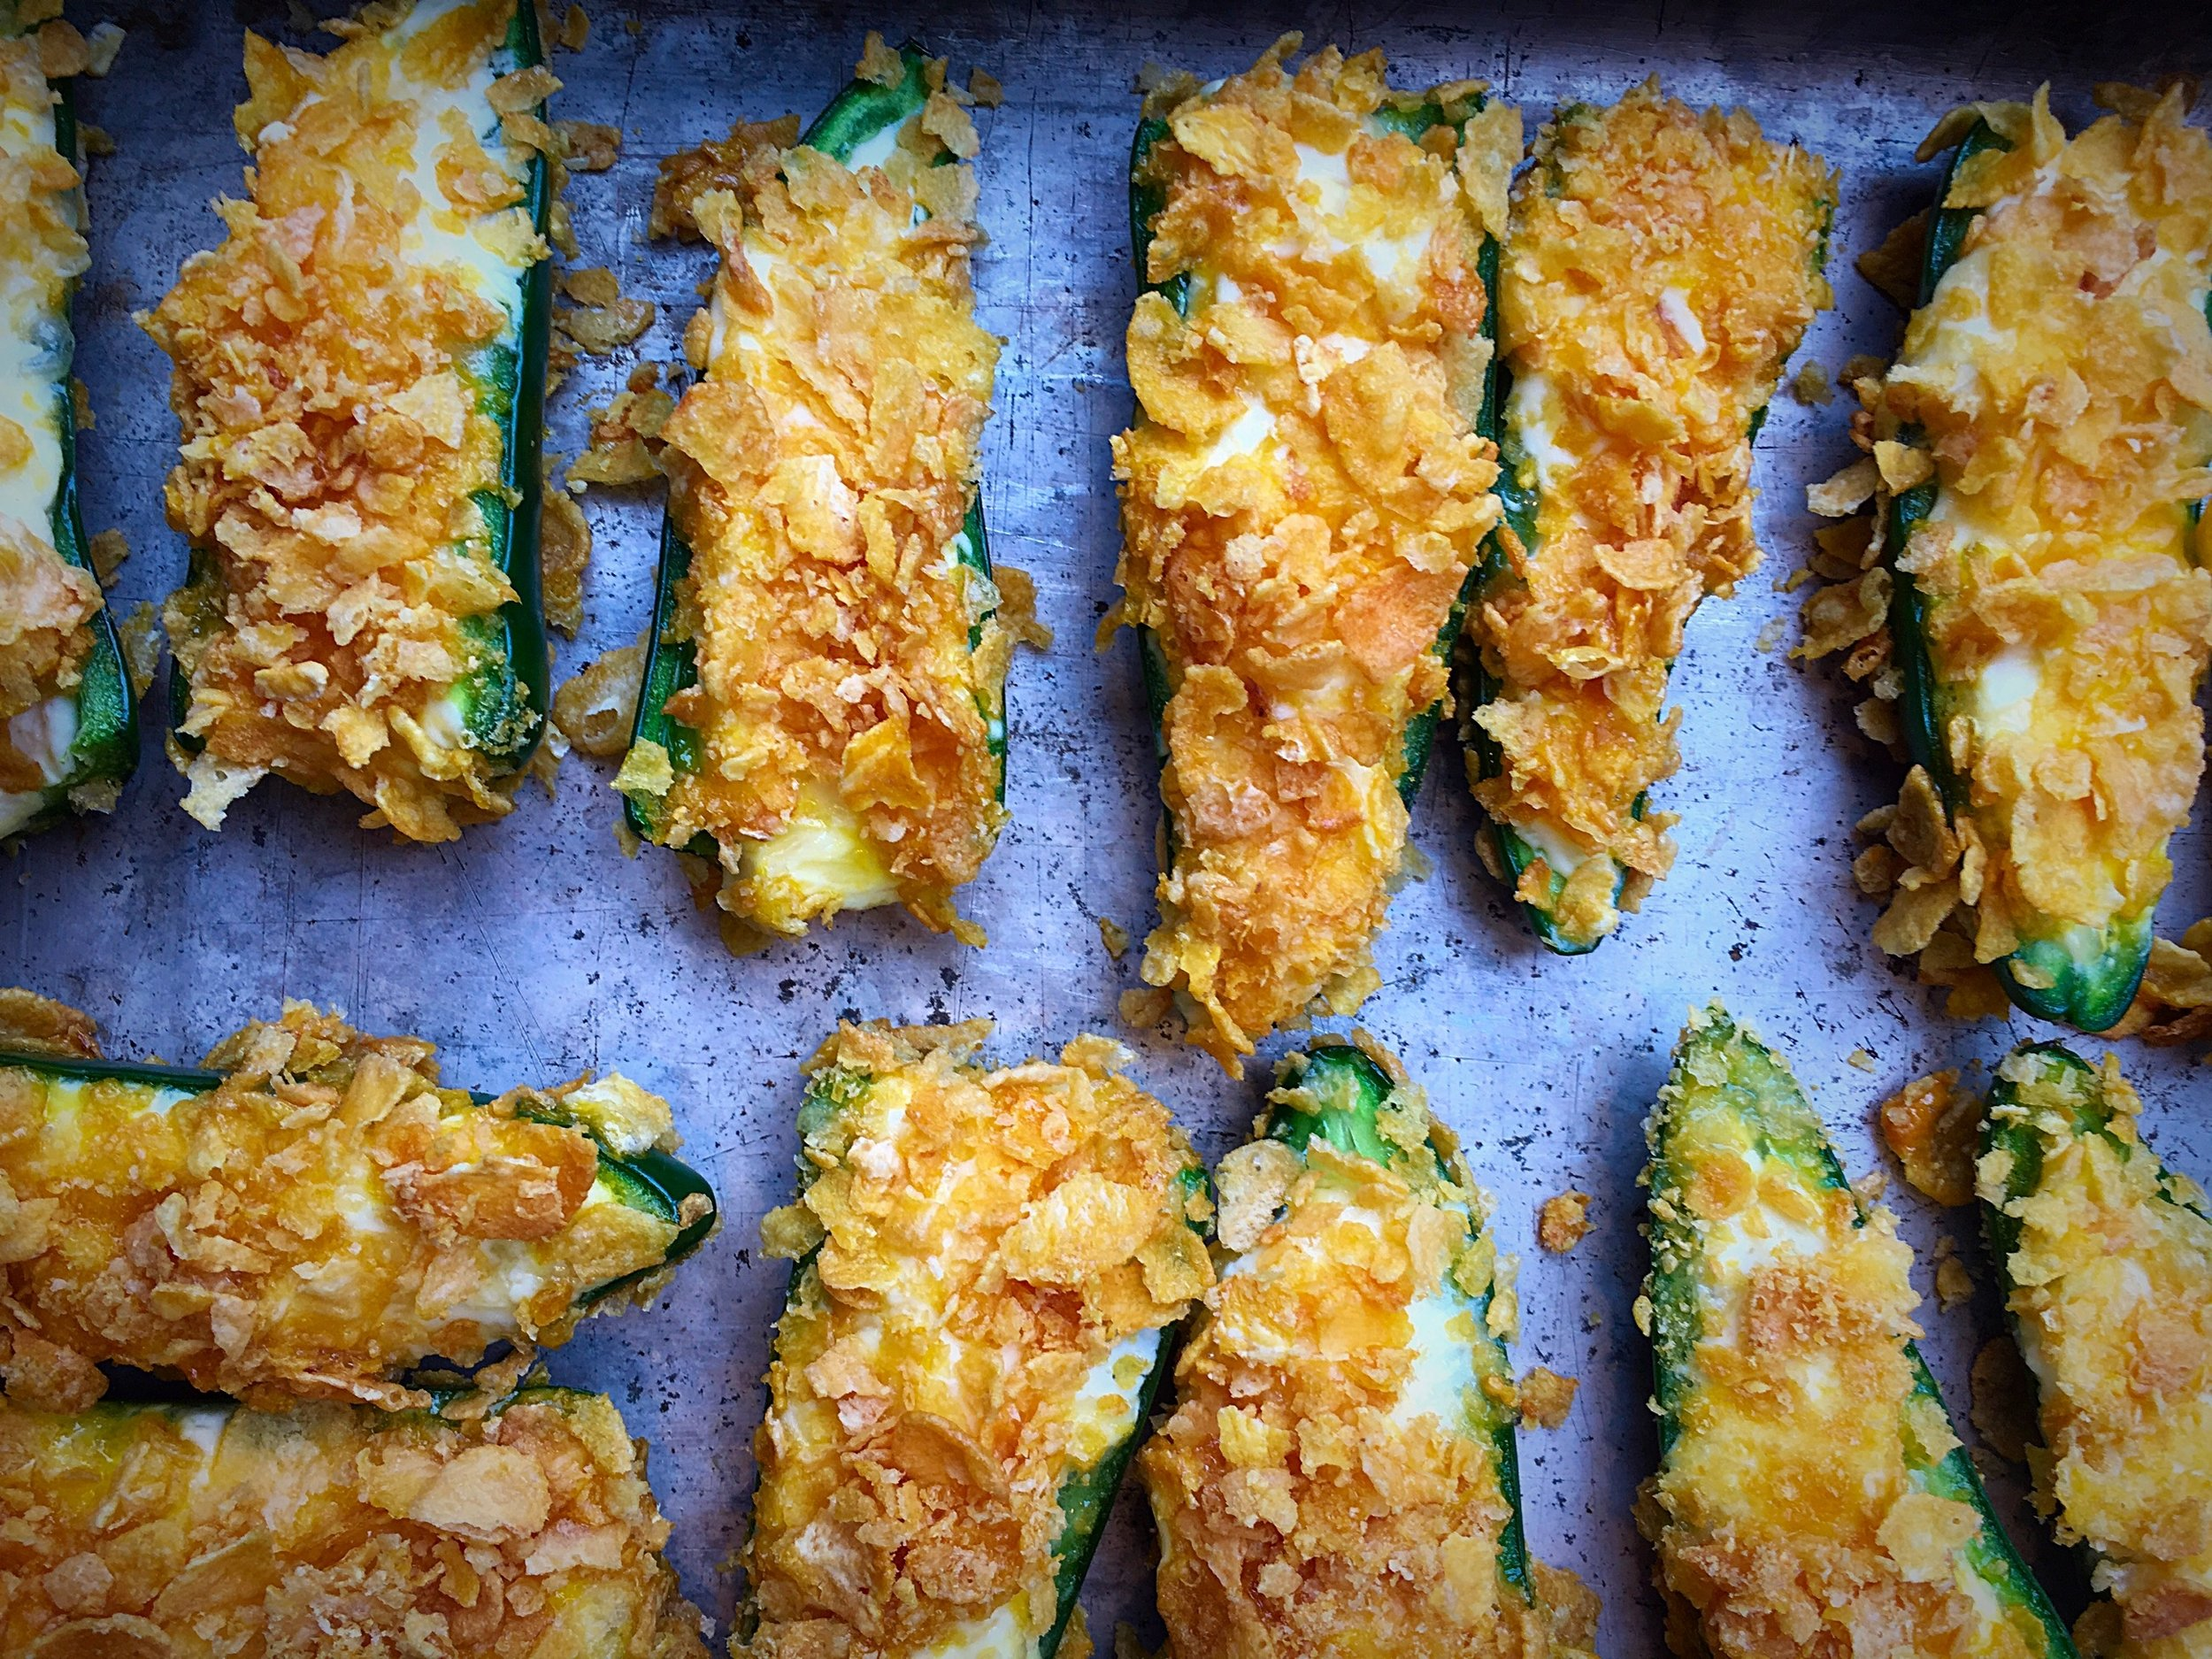 What You'll Need:  1 dozen fresh jalapenos, sliced lengthwise and seeded*  1 package organic cream cheese, or Neufchatel**  1/2 c shredded cheddar, or other hard cheese  2 eggs, whisked  2 c organic corn flakes, crumbled